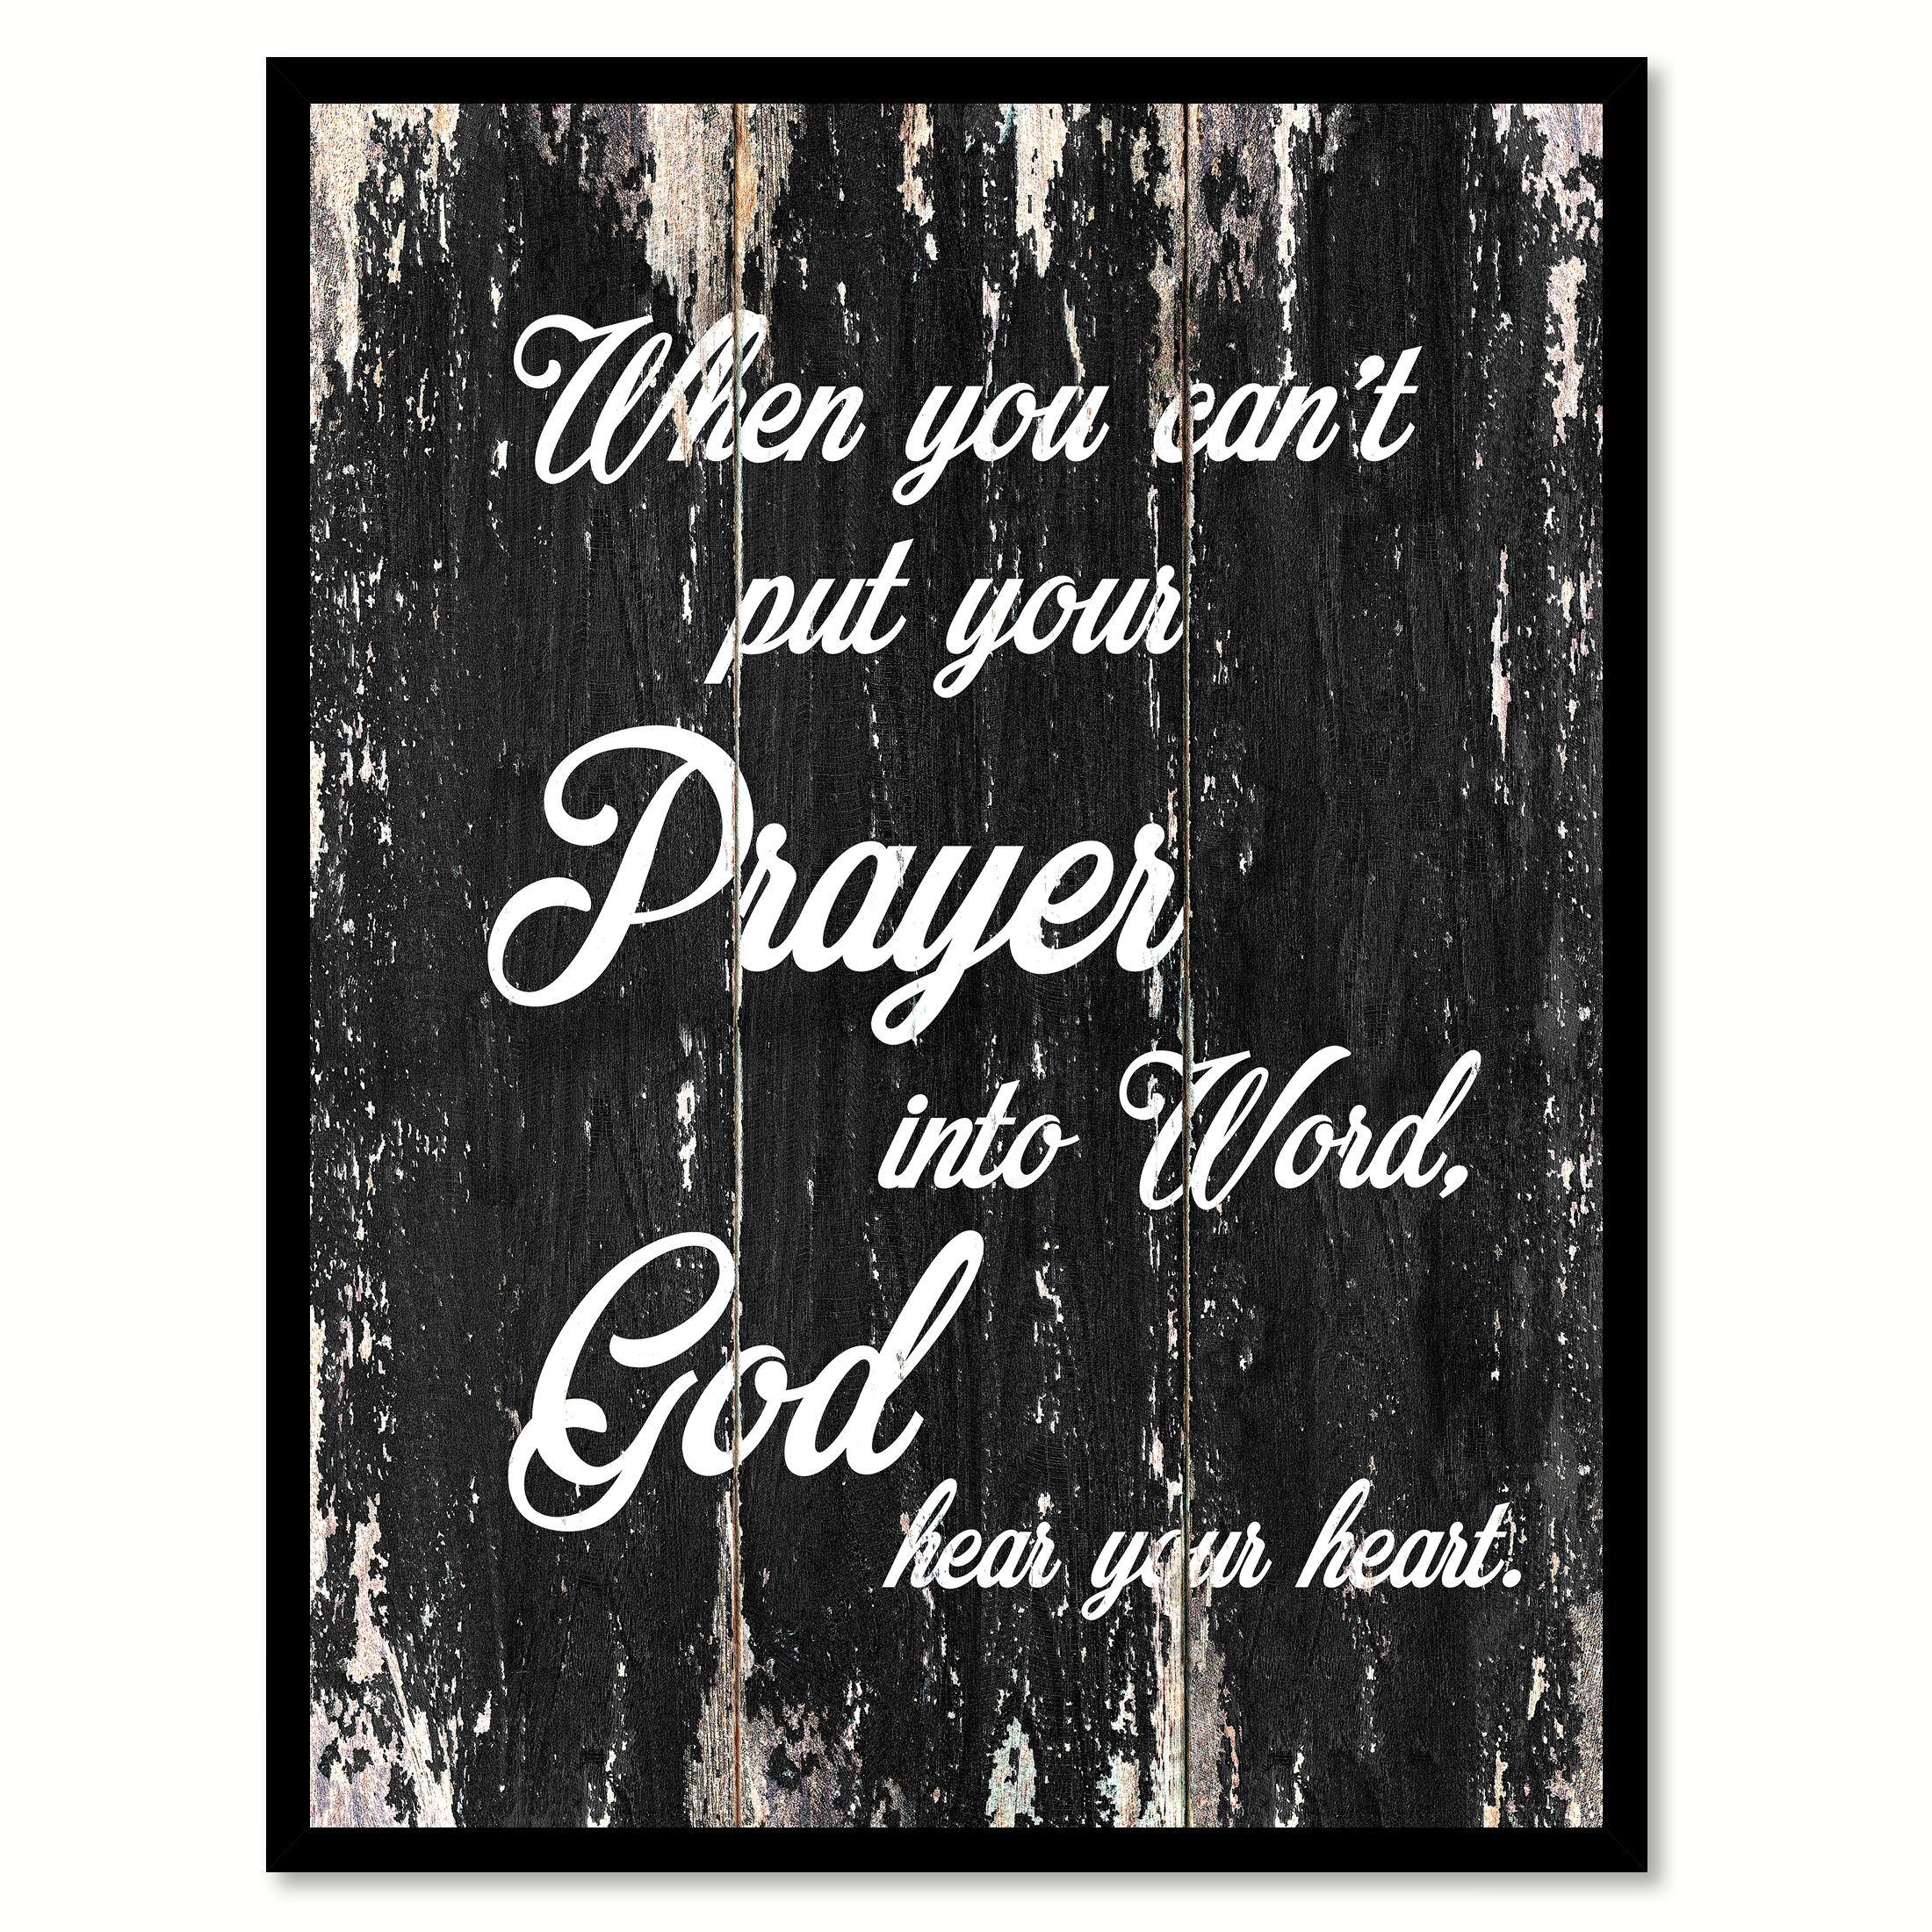 "When You Can't Put Your Prayer Into Word God Hear Your Heart Motivation Quote Saying Black Canvas Print Picture Frame Home Decor Wall Art Gift Ideas 7"" x 9"""